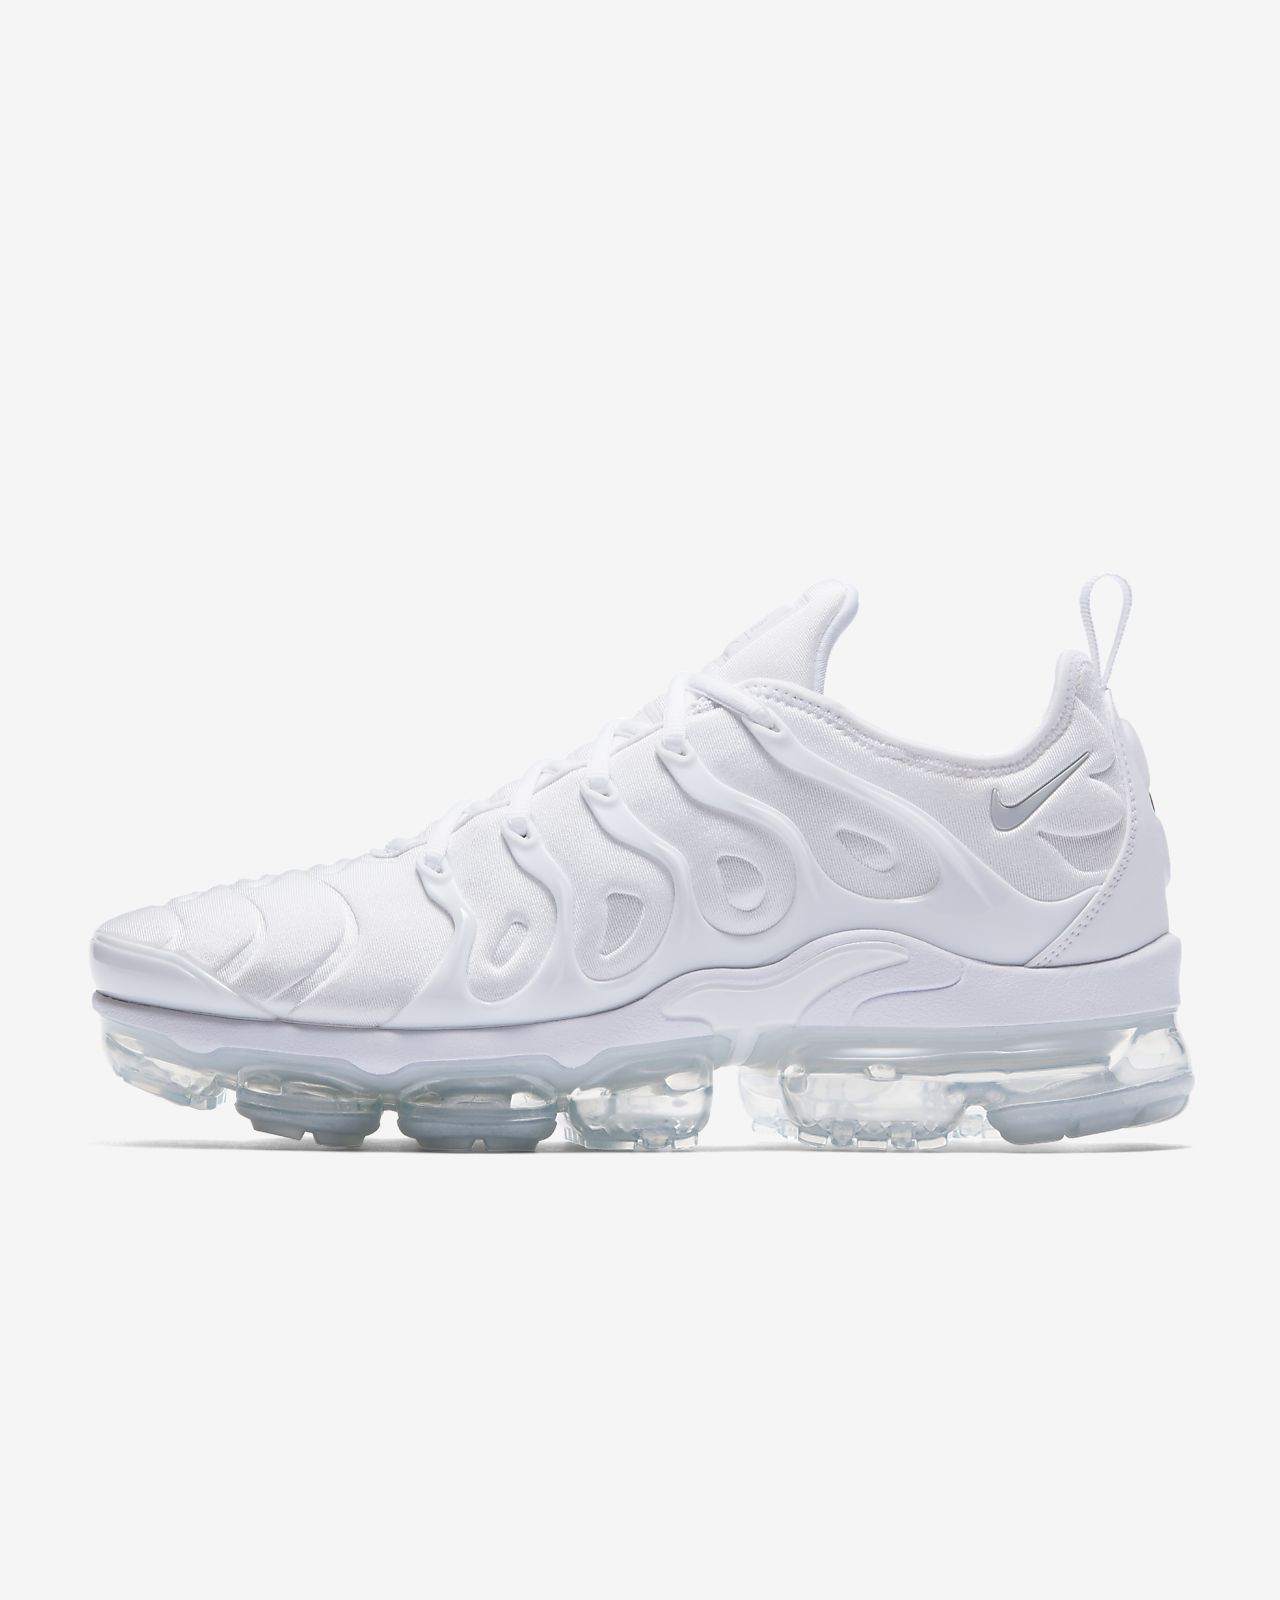 dcefb300e8 Nike Air VaporMax Plus Men's Shoe. Nike.com